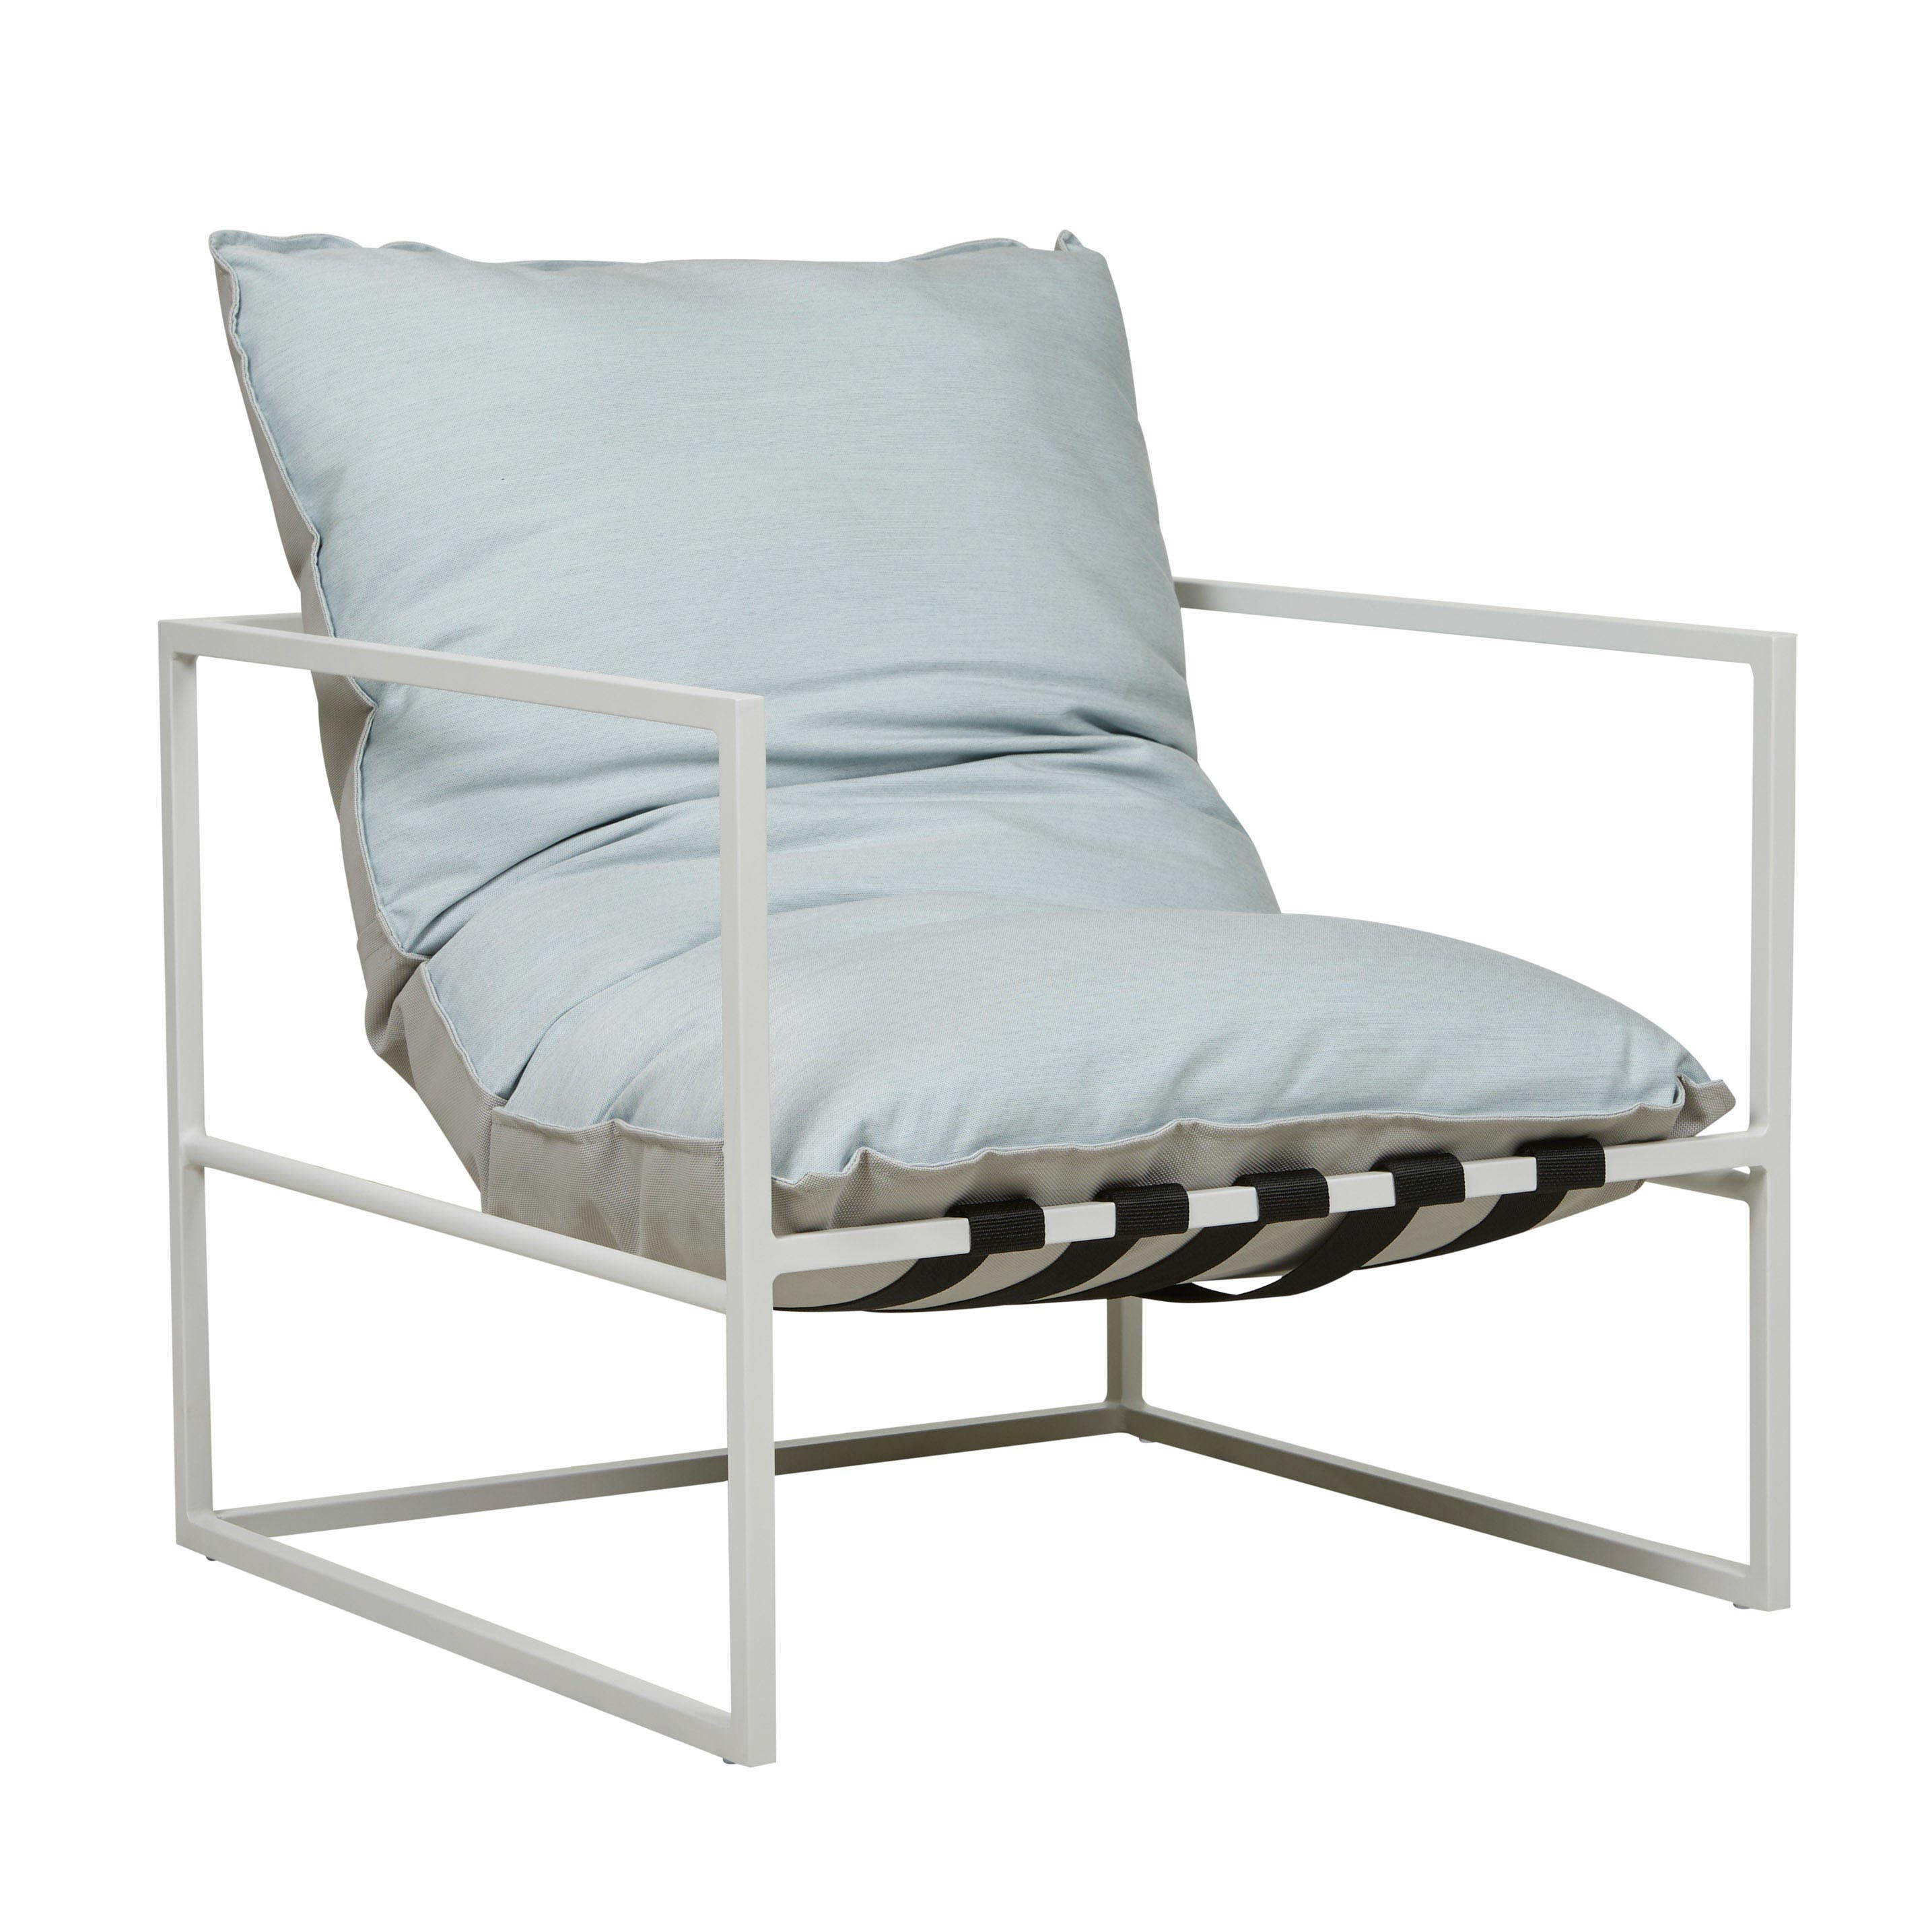 Furniture Hero-Images Occasional-Chairs aruba-frame-04